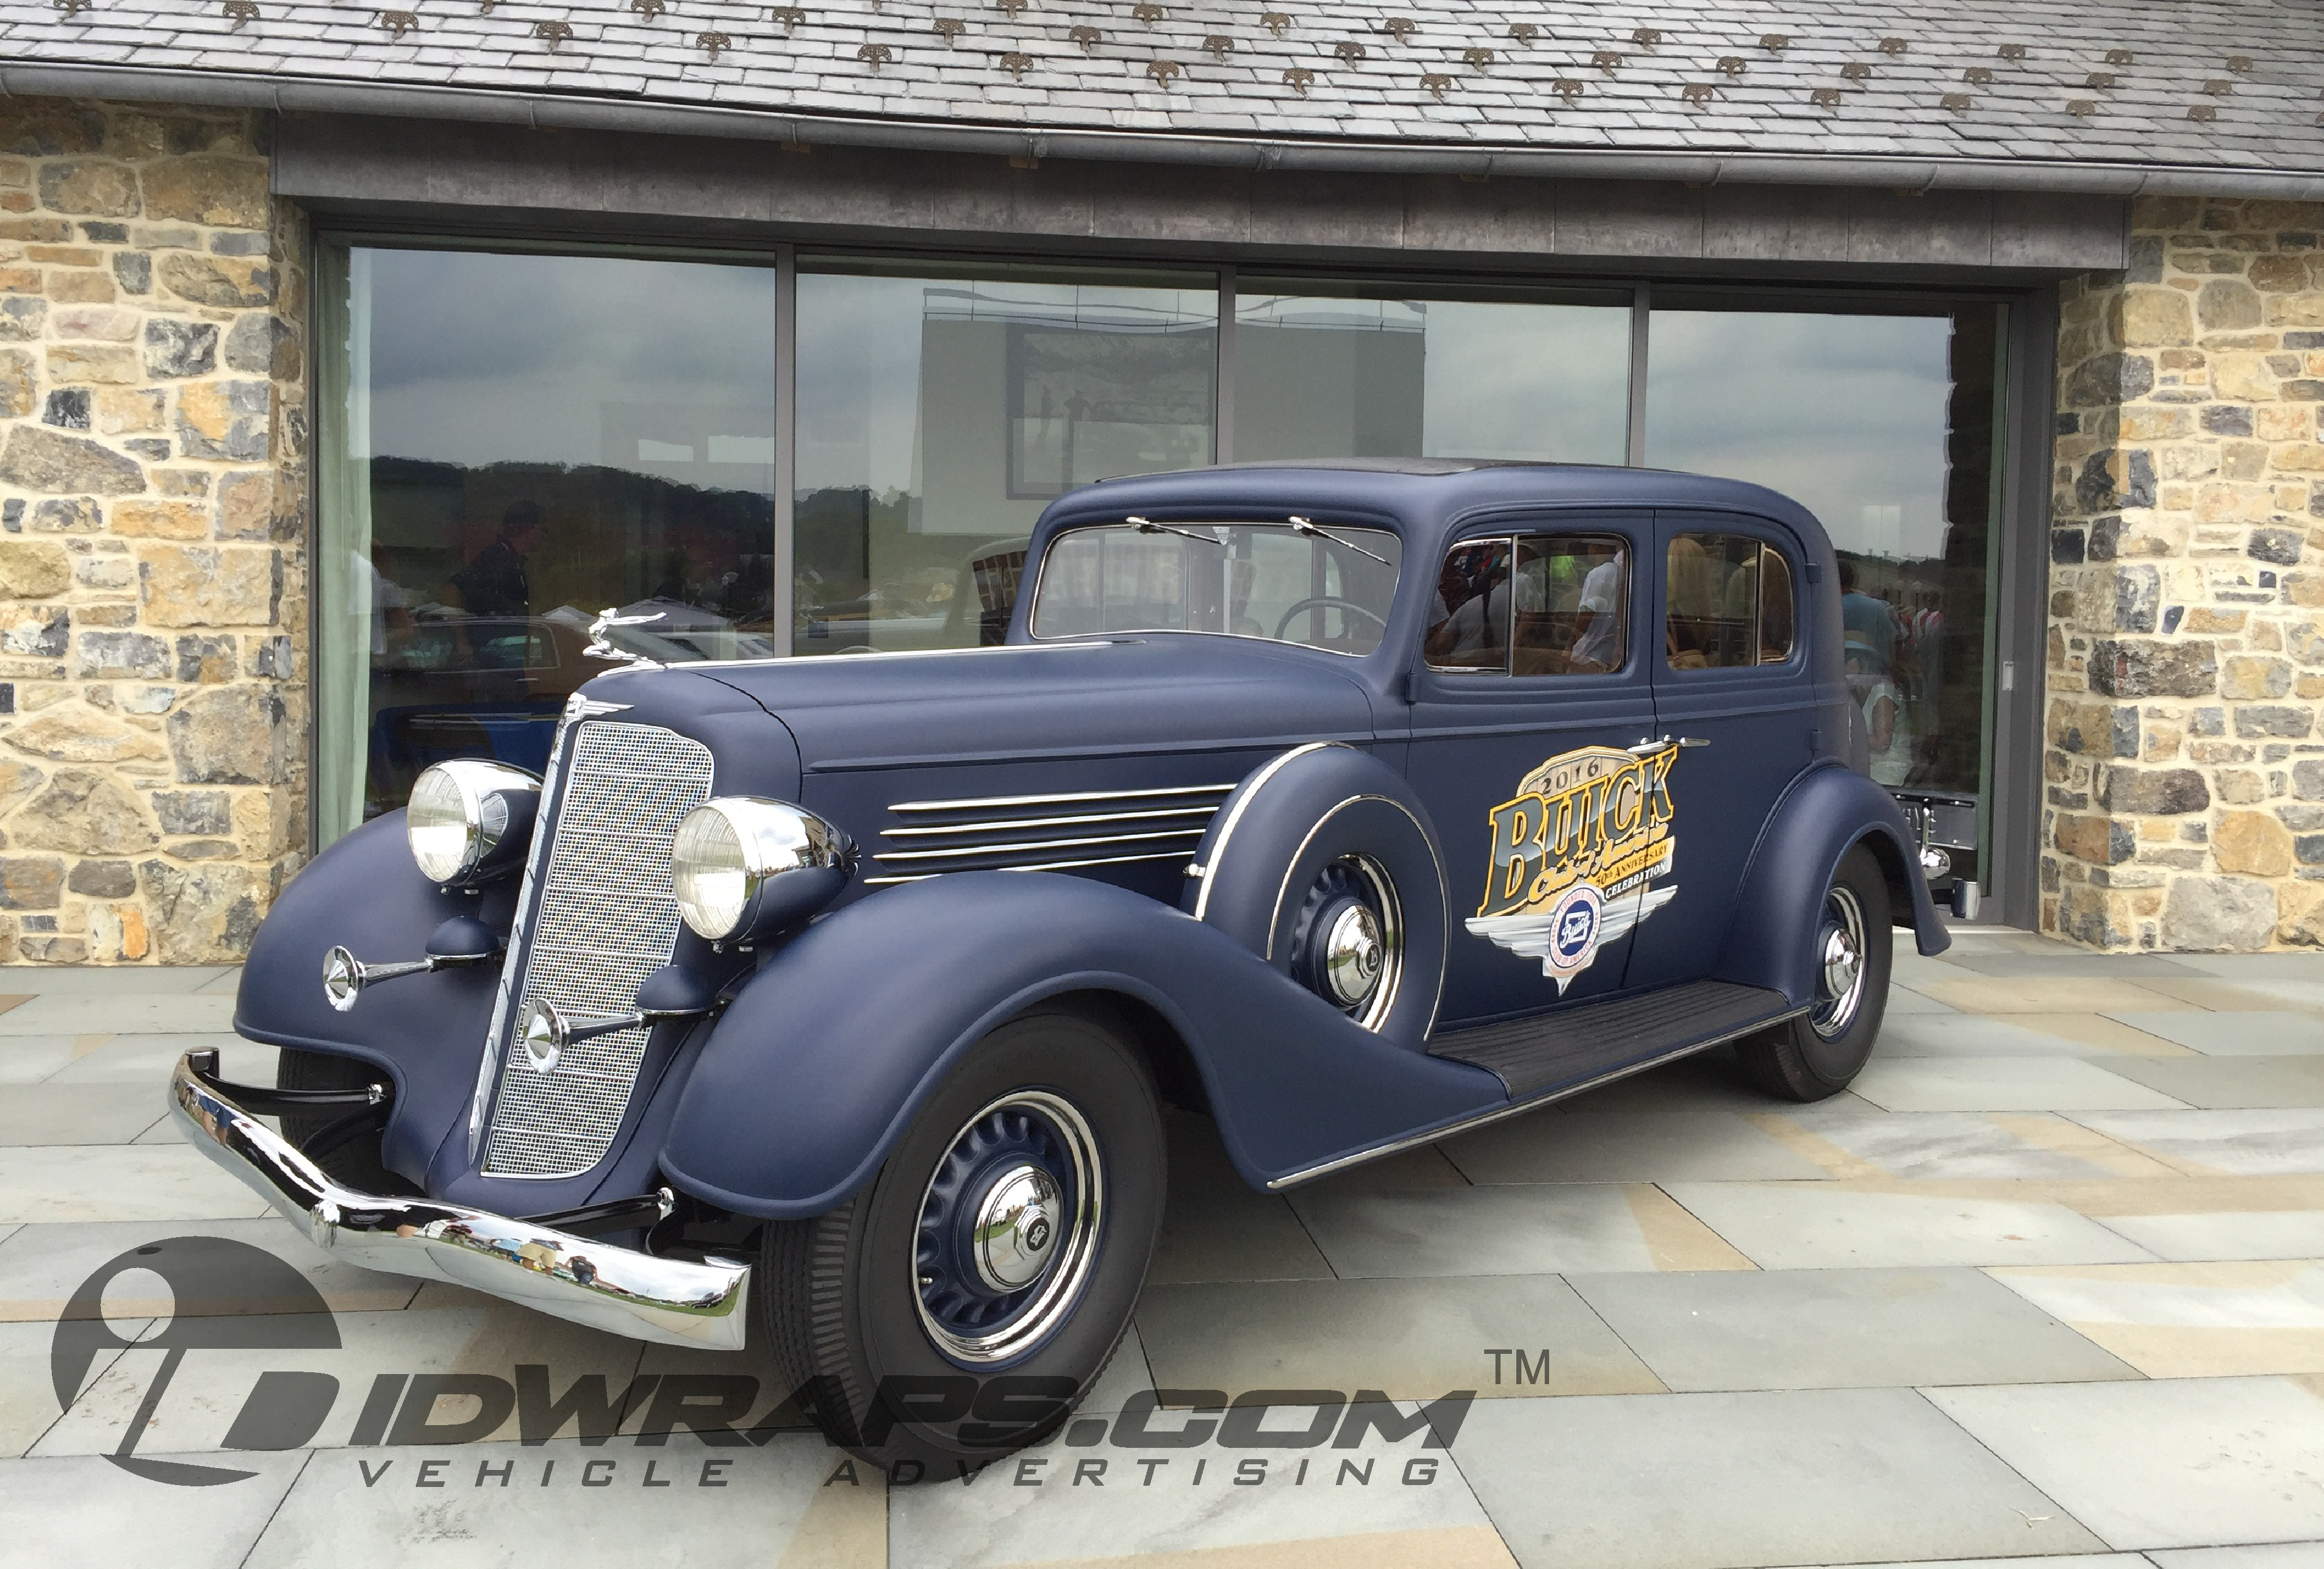 Classic car wrap for national event